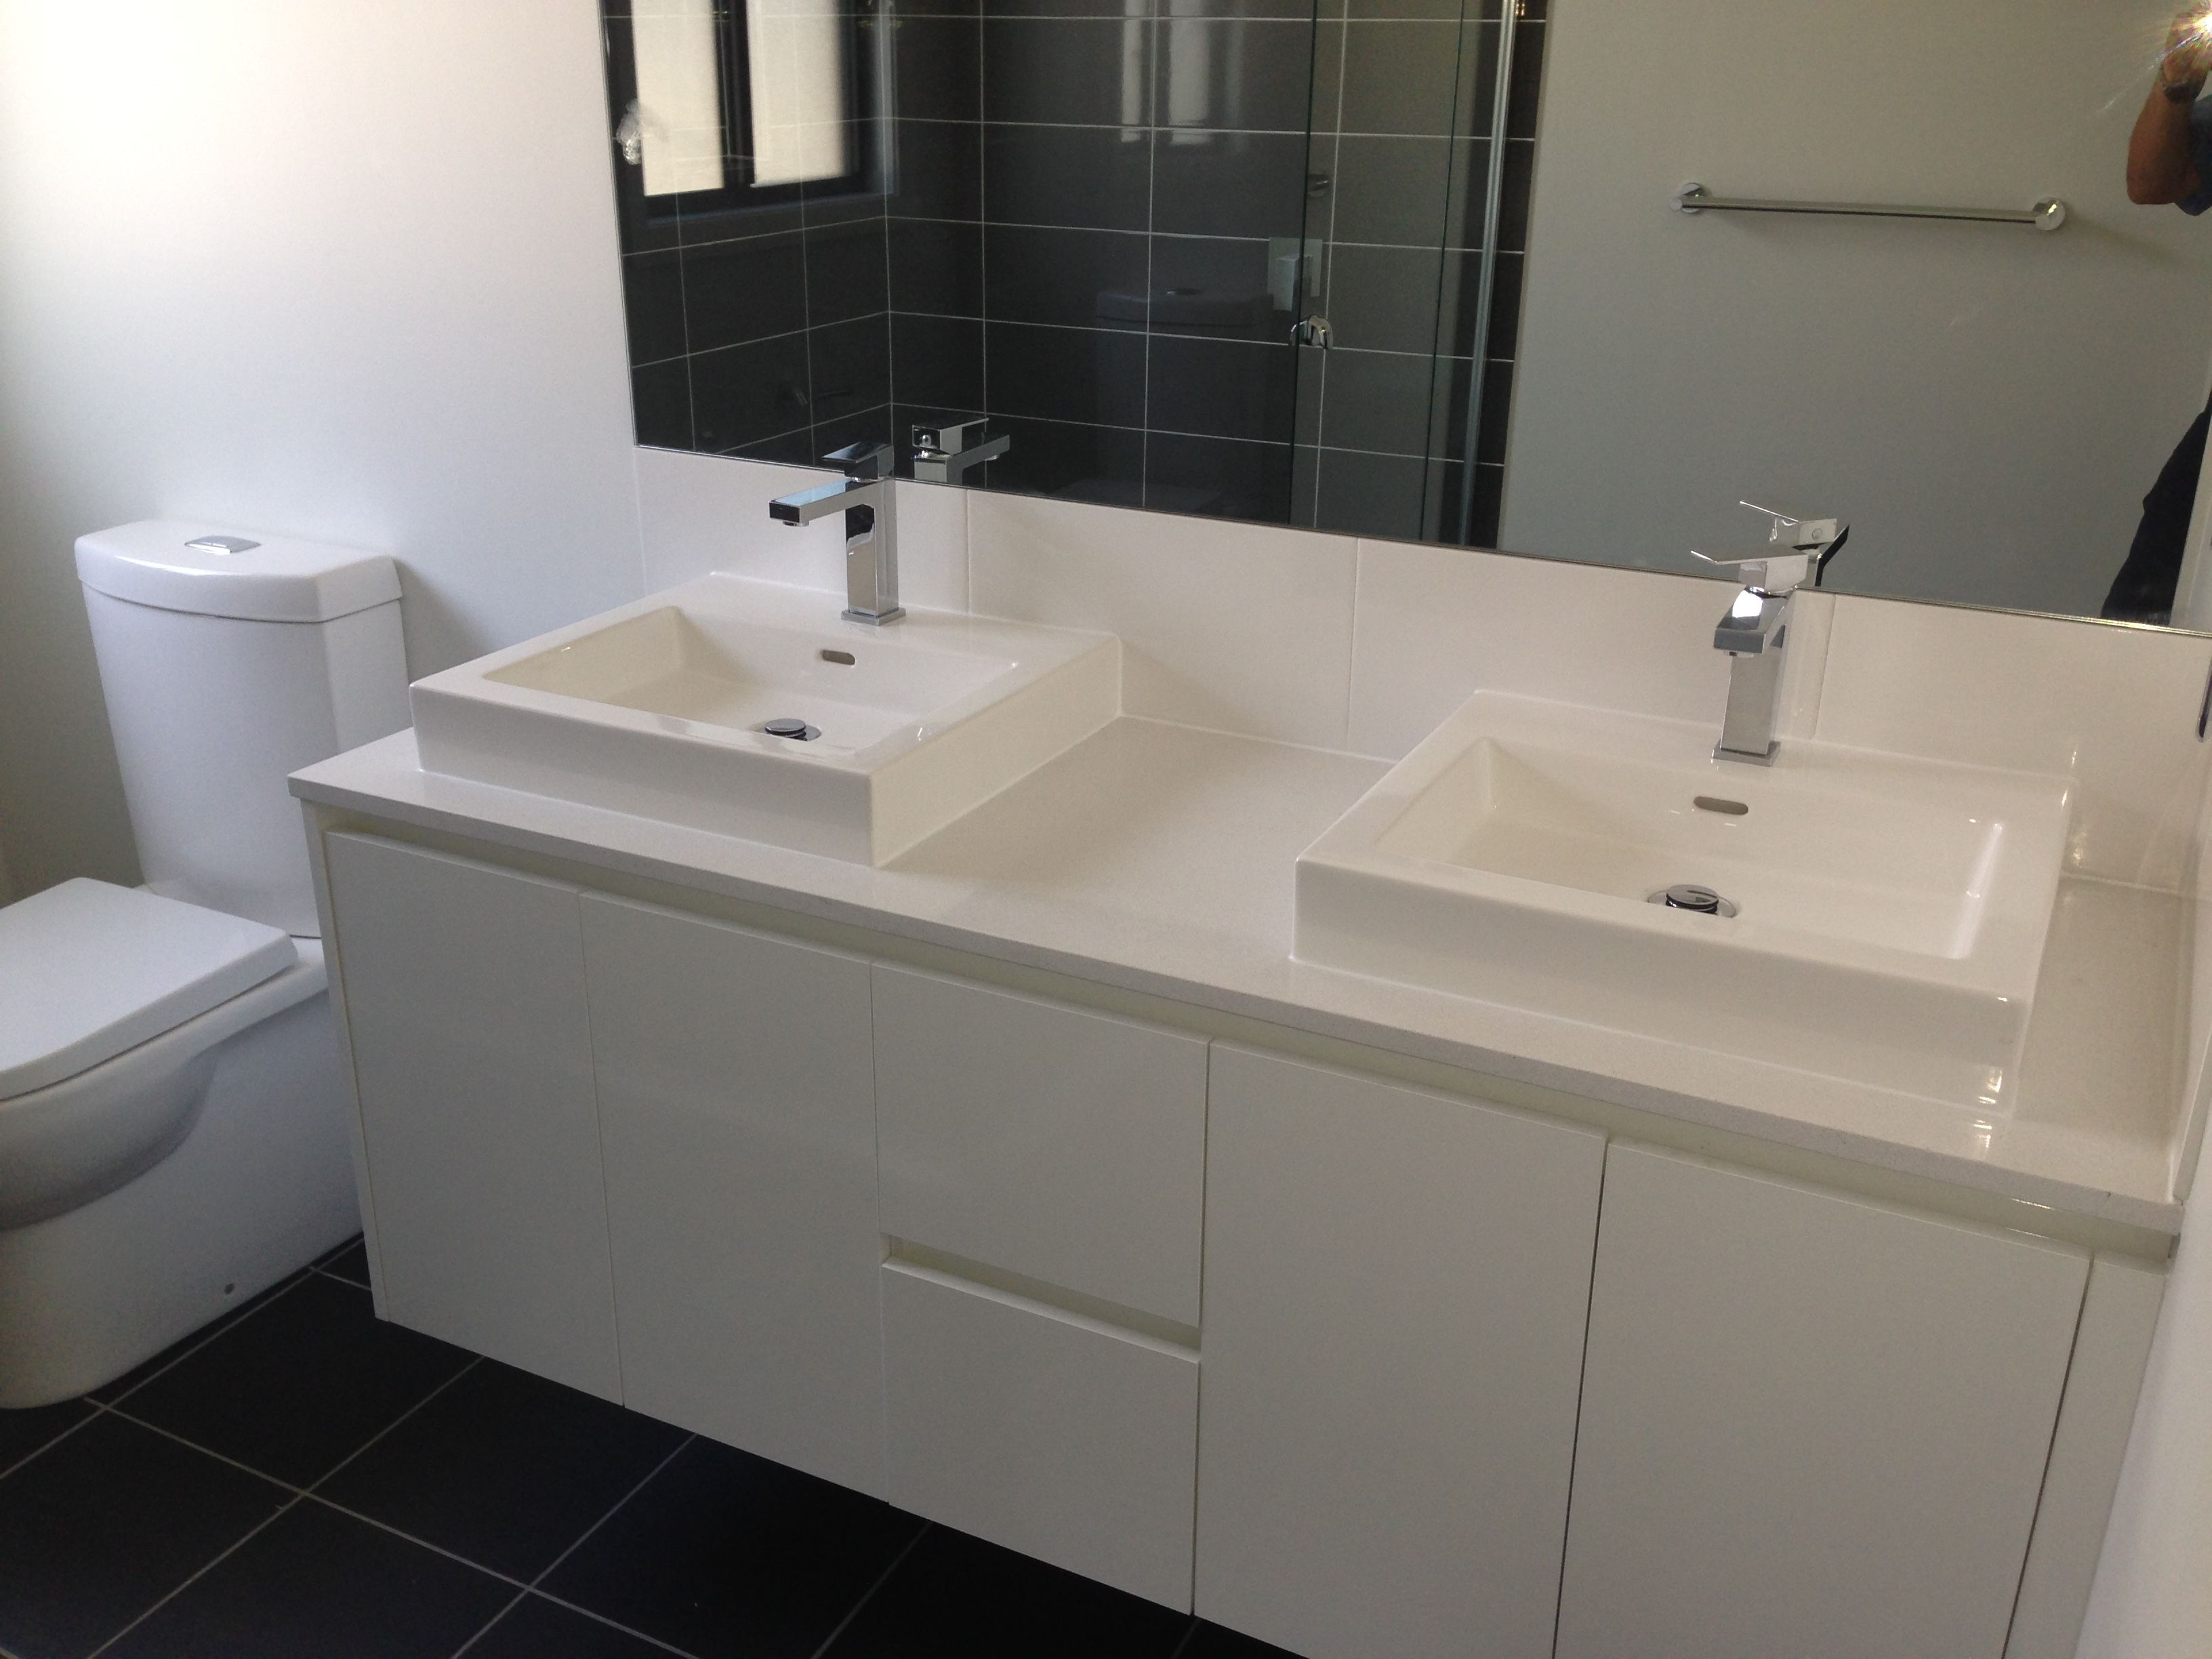 Ensuite Vanity With Finger Pulls In Lieu Of Handles Kado Lux Above Counter Basins And Reece Miz Bathroom Design Inspiration New Home Builders Kitchen And Bath